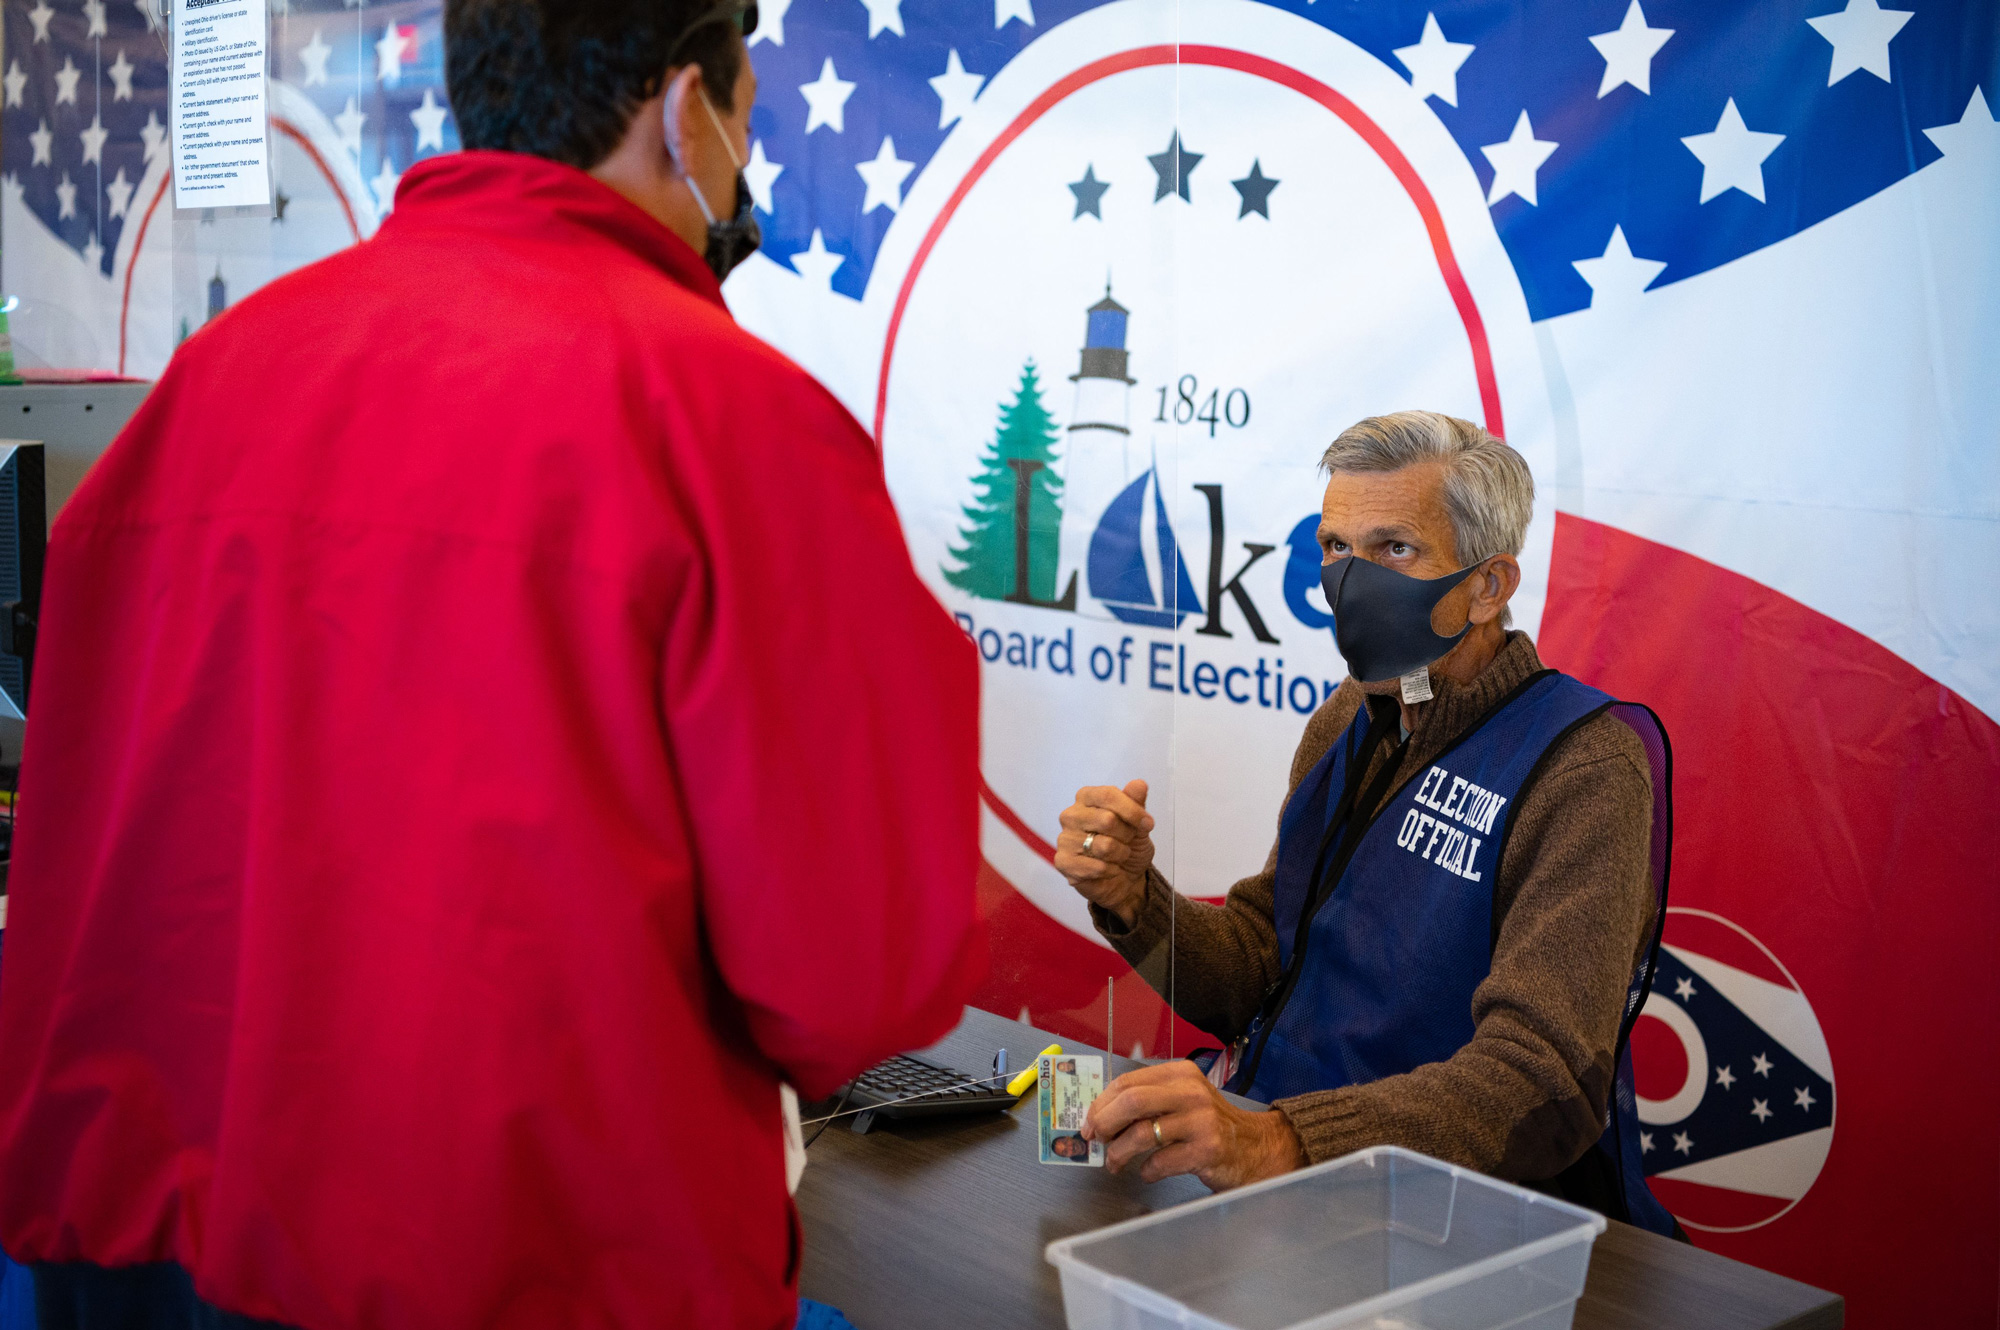 Election official Scott Hagara checks in a voter at the board of elections headquarters during early voting on October 16 in Painesville, Ohio.